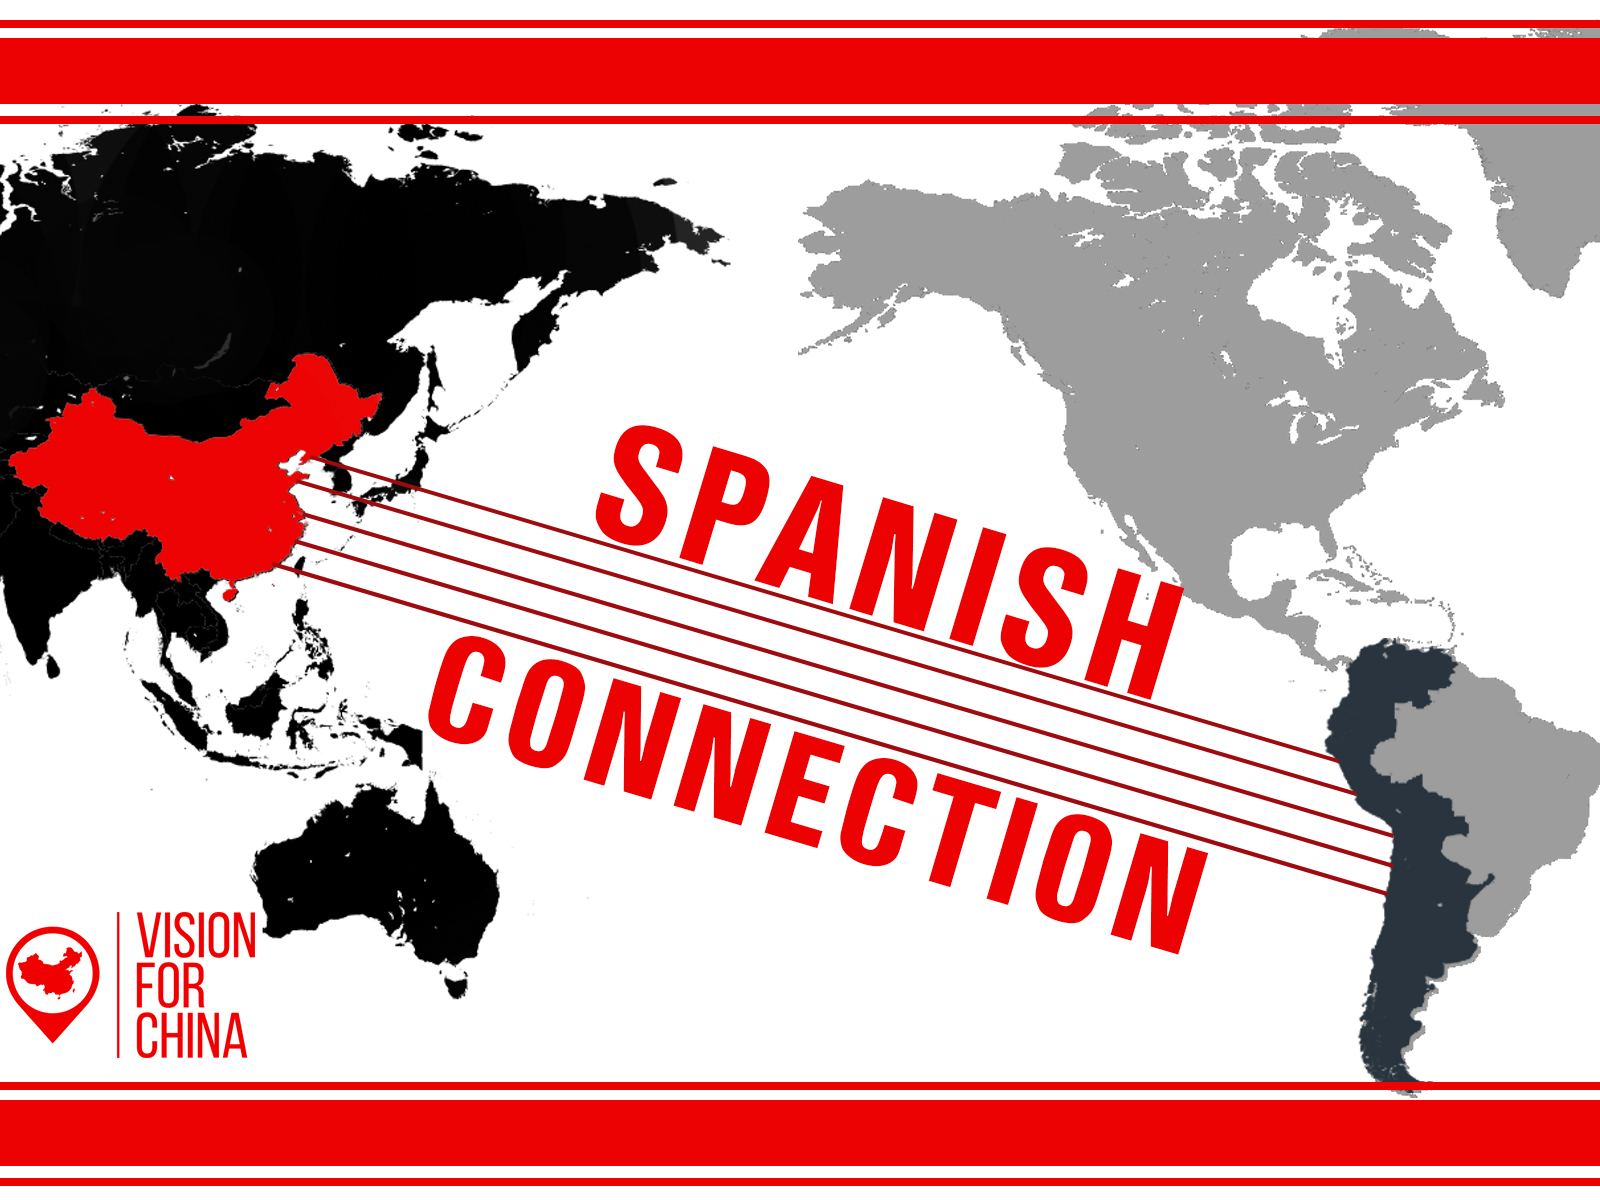 Spanish Missions in China - Connecting Latin America to China